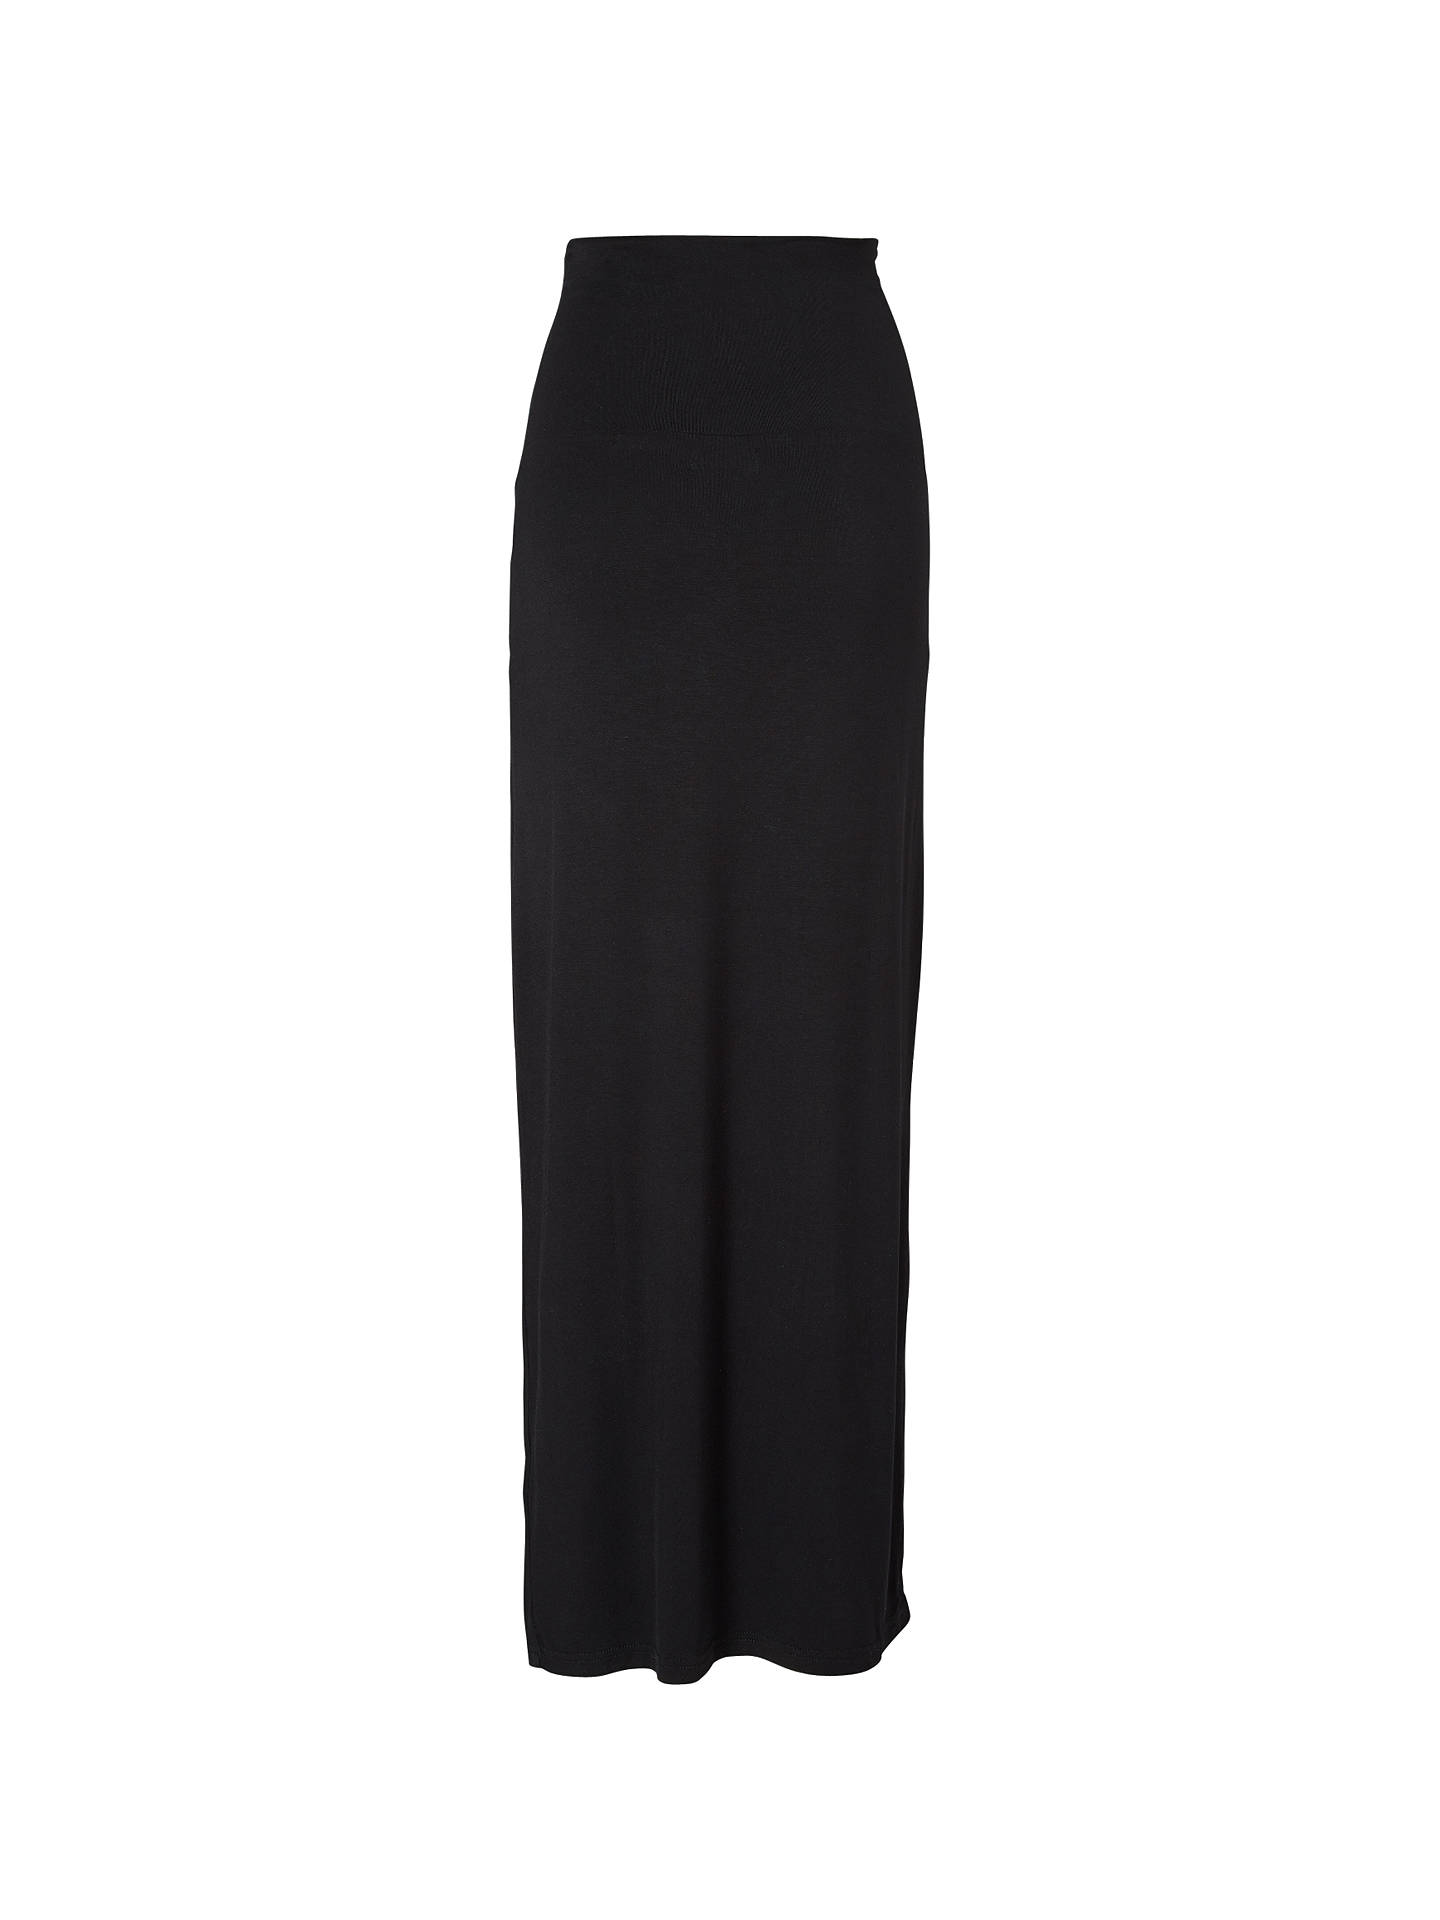 fd45c57bd Buy Mamalicious Rosa Tube Maxi Maternity Skirt, Black, S Online at  johnlewis.com ...